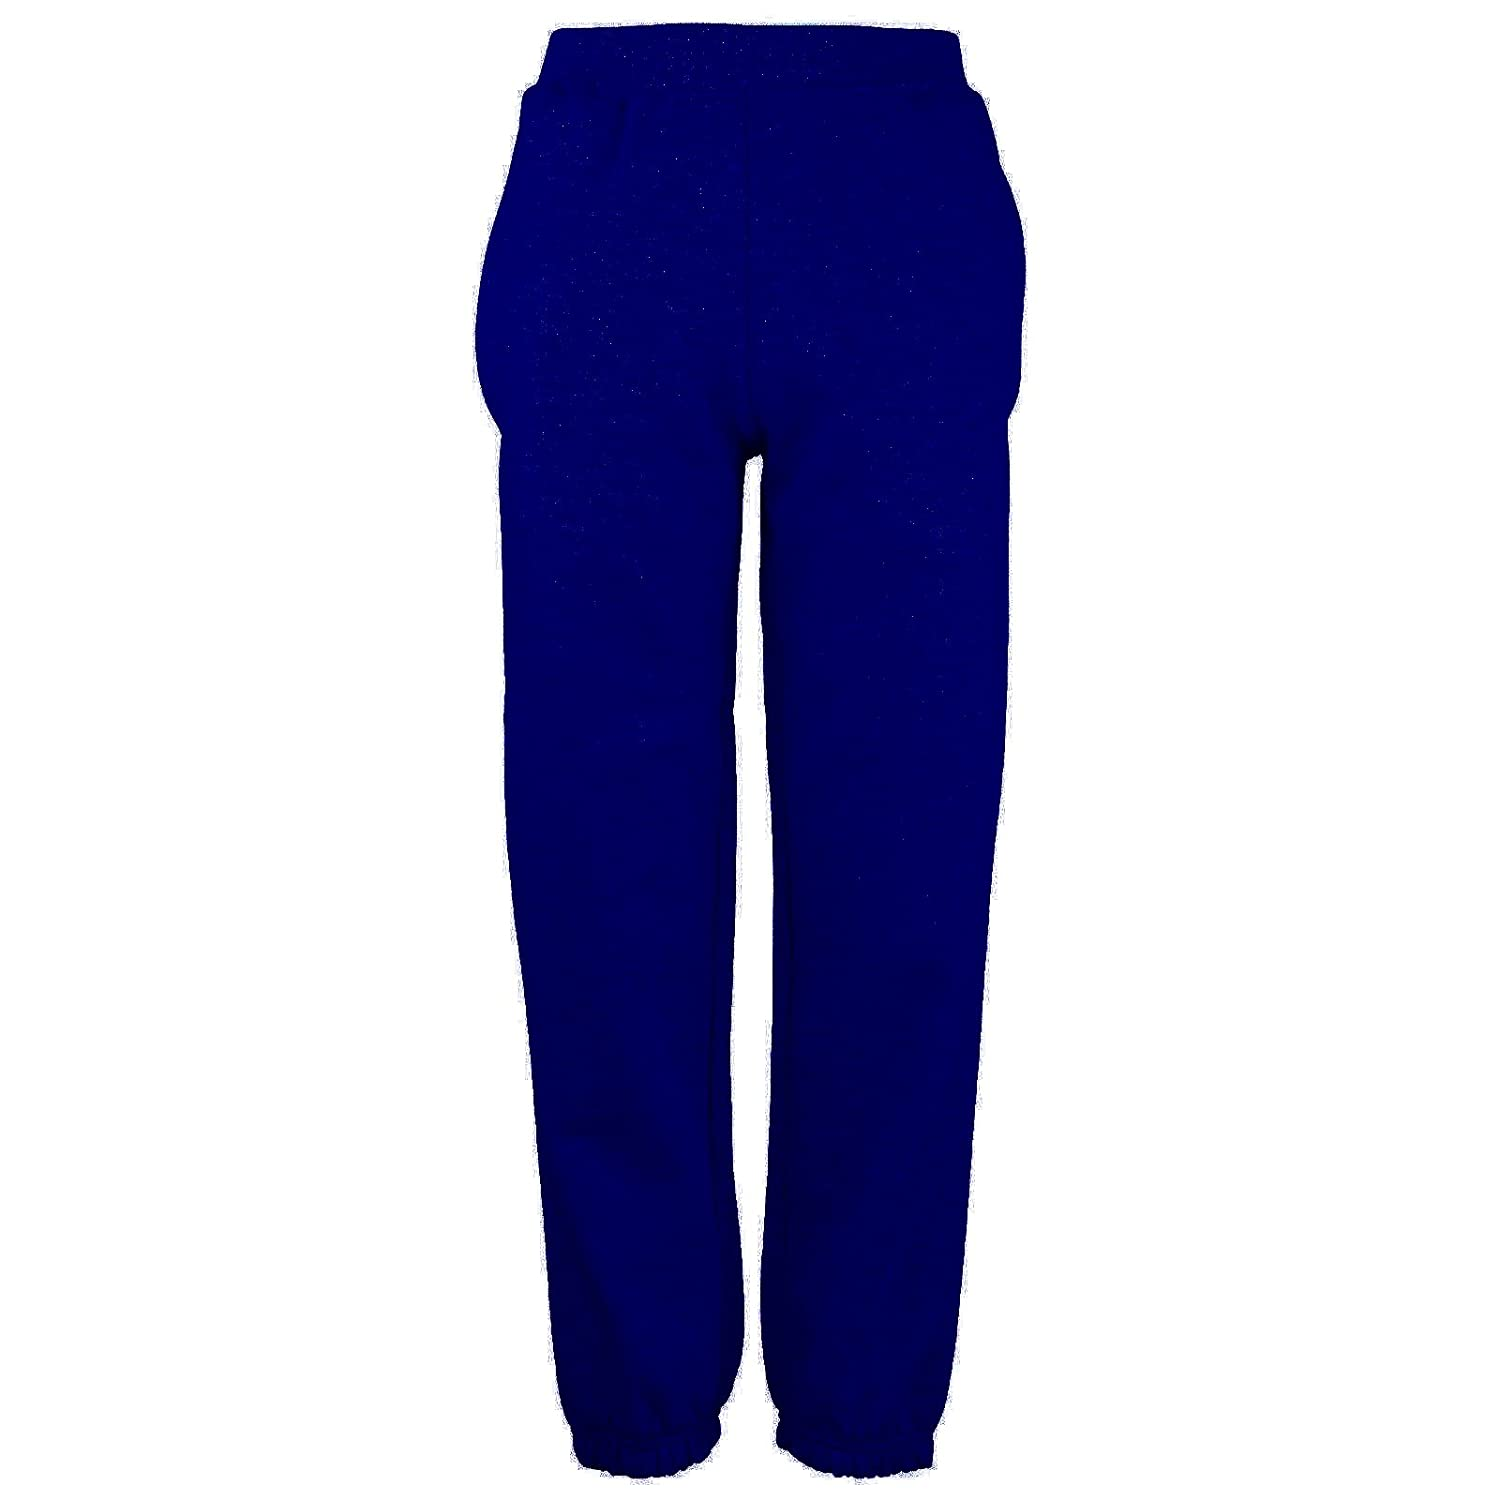 Ages 3-15 Childrens Jogging Bottoms Plain School Uniform Cuffed Elastic Fleece Boys Girls P.E.